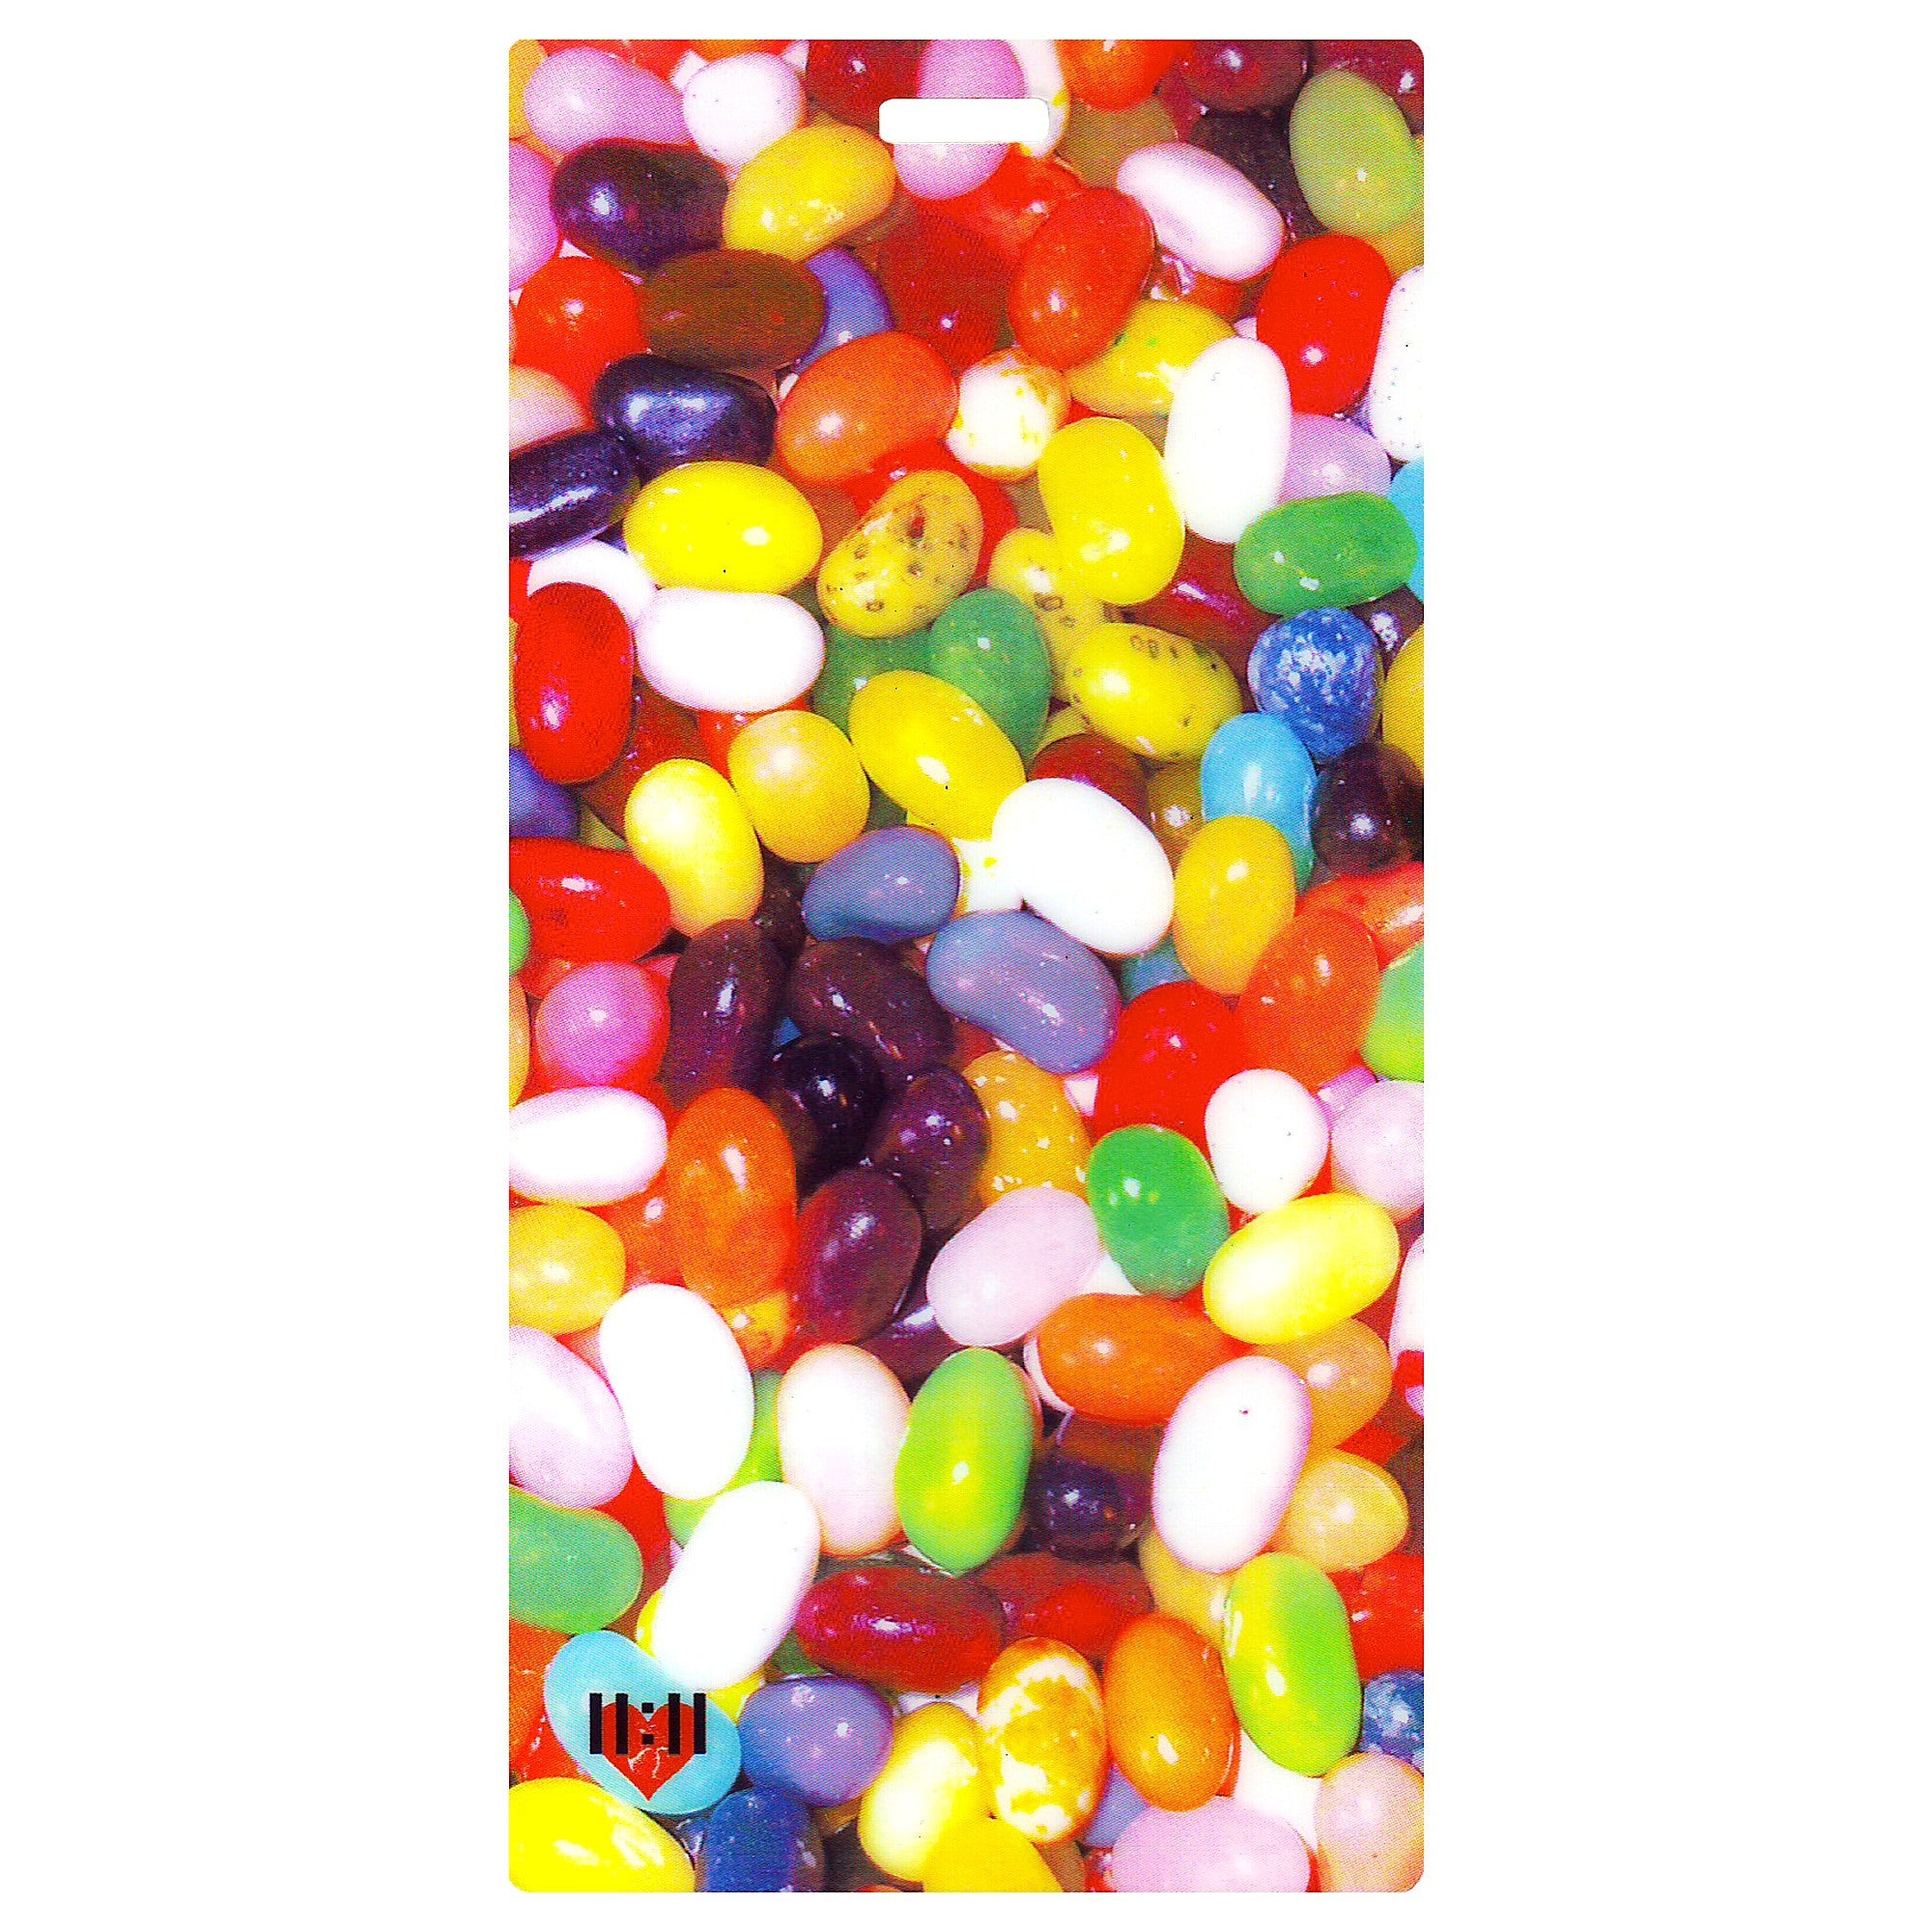 Jelly Beans Celebration Luggage Bag Tag Set - 2 pc, Large by 11:11 Enterprises